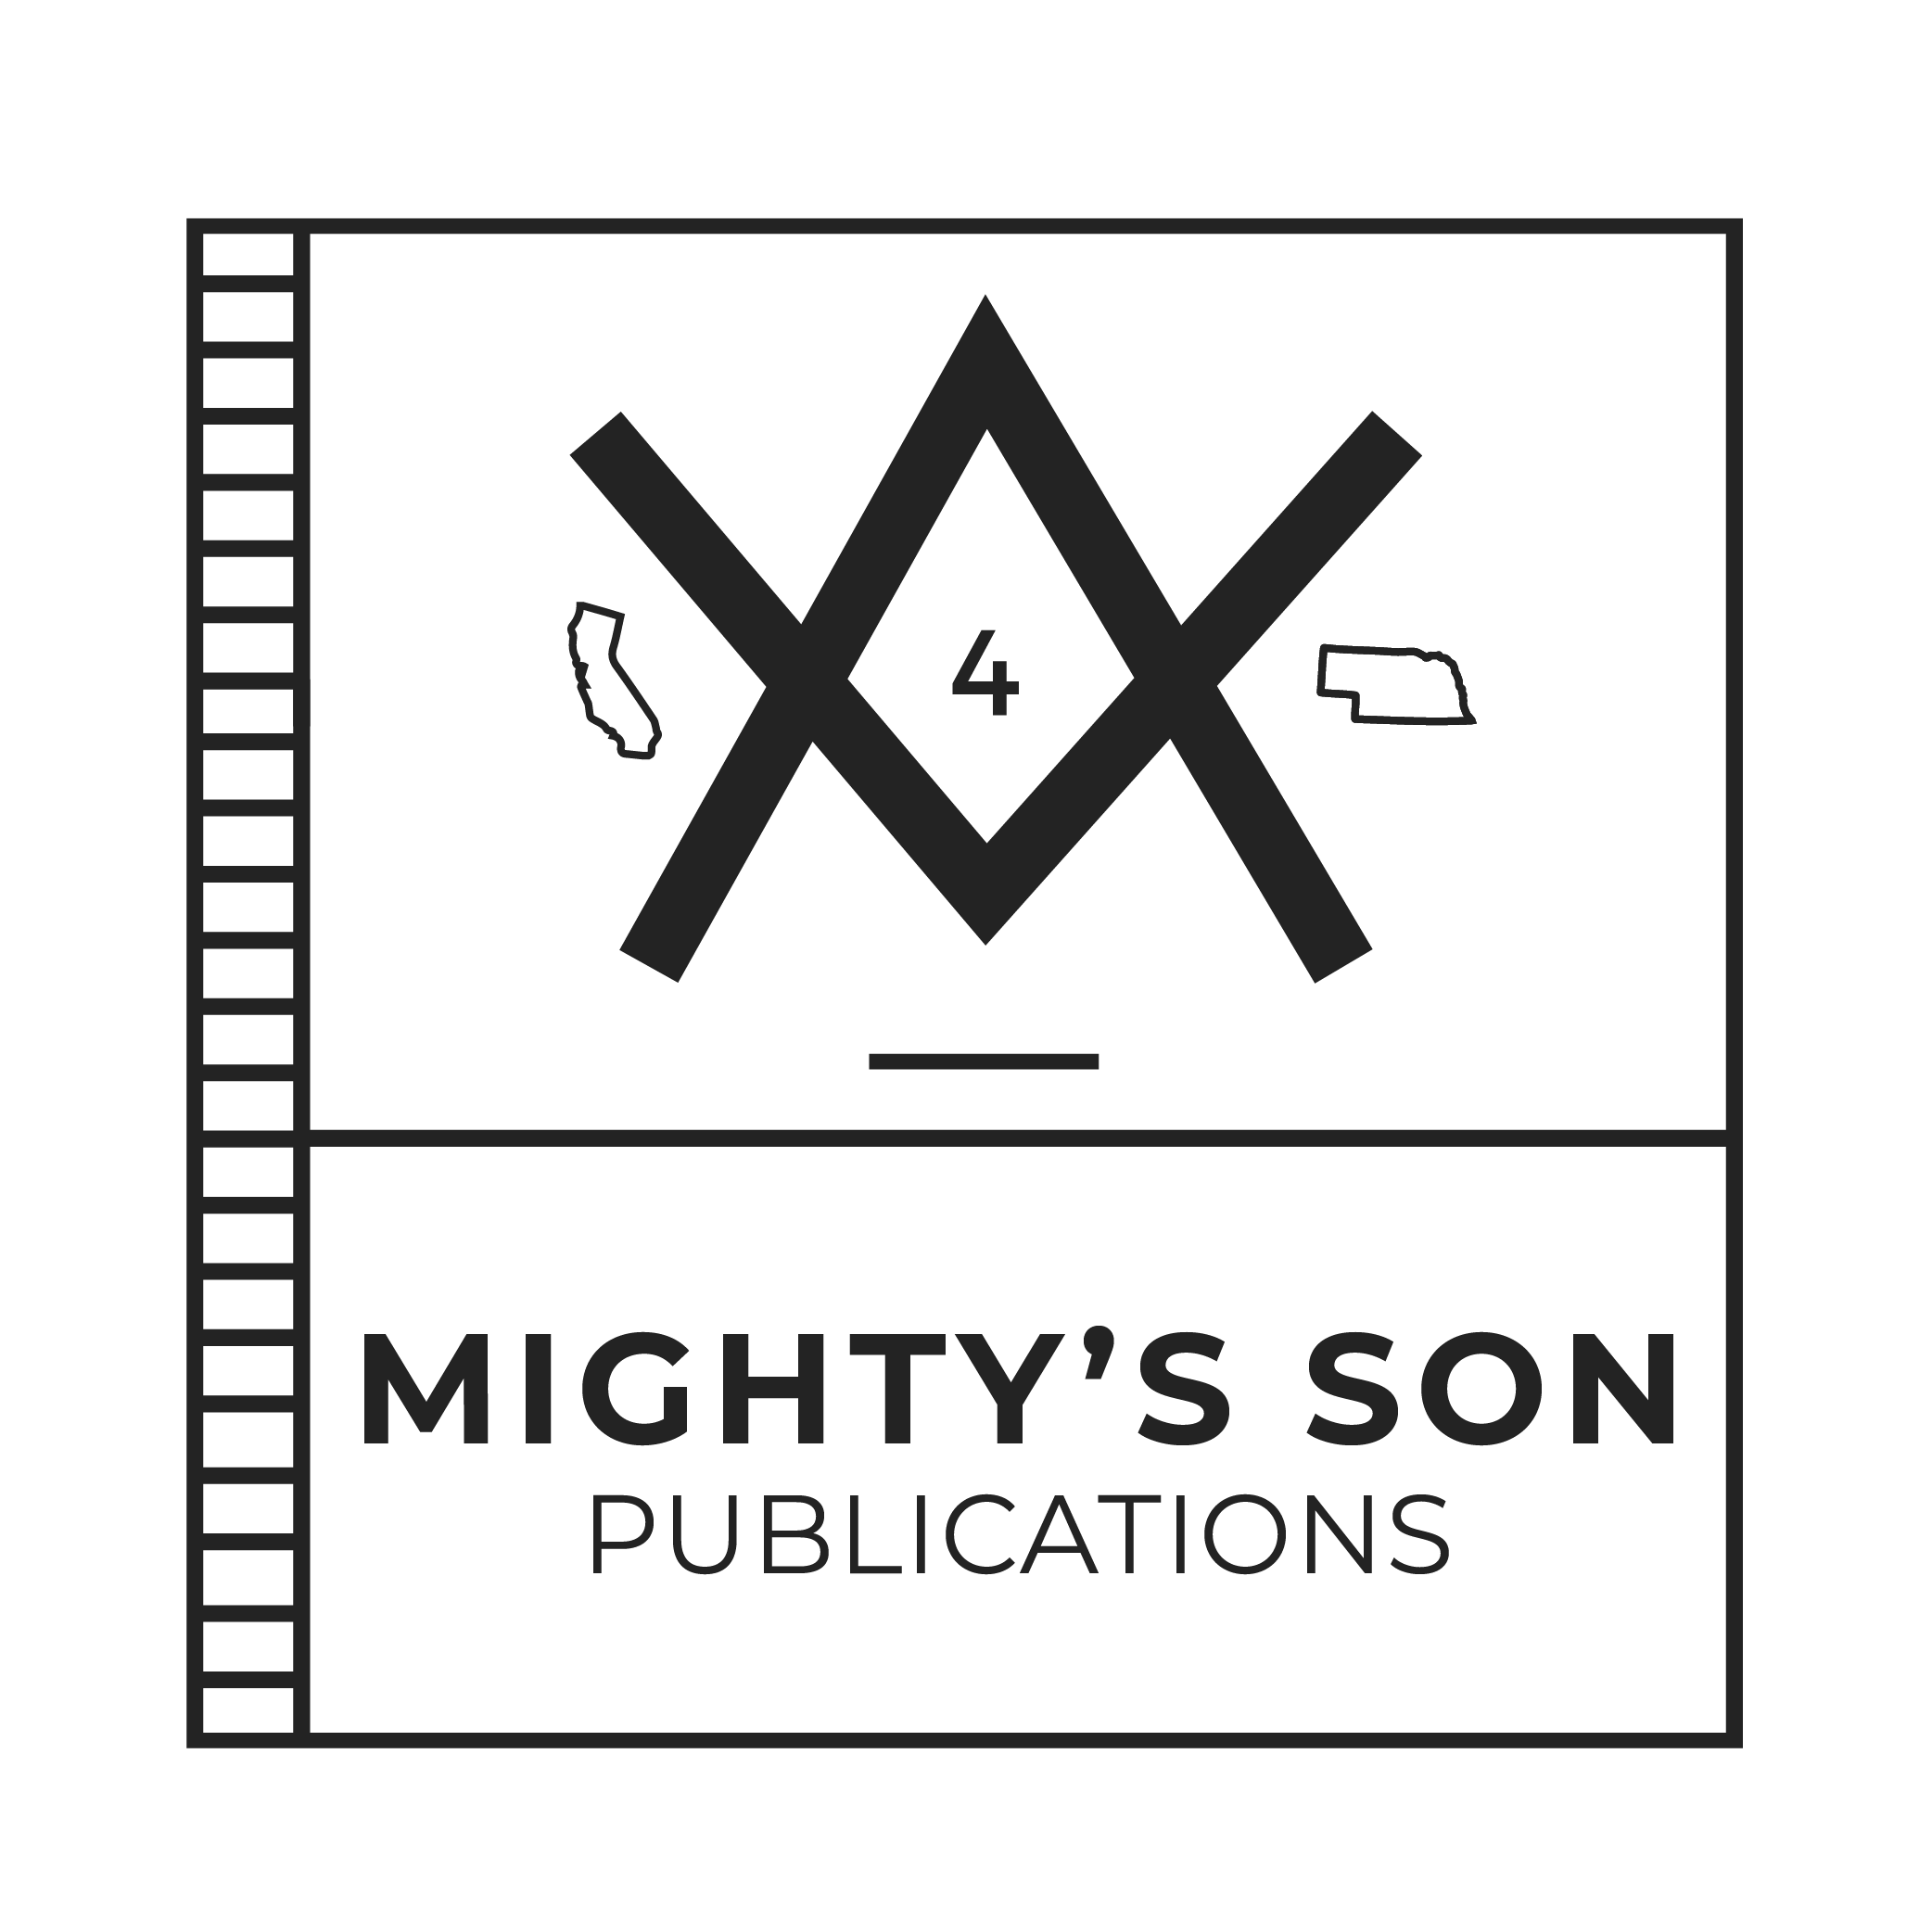 Mighty's Son Publication